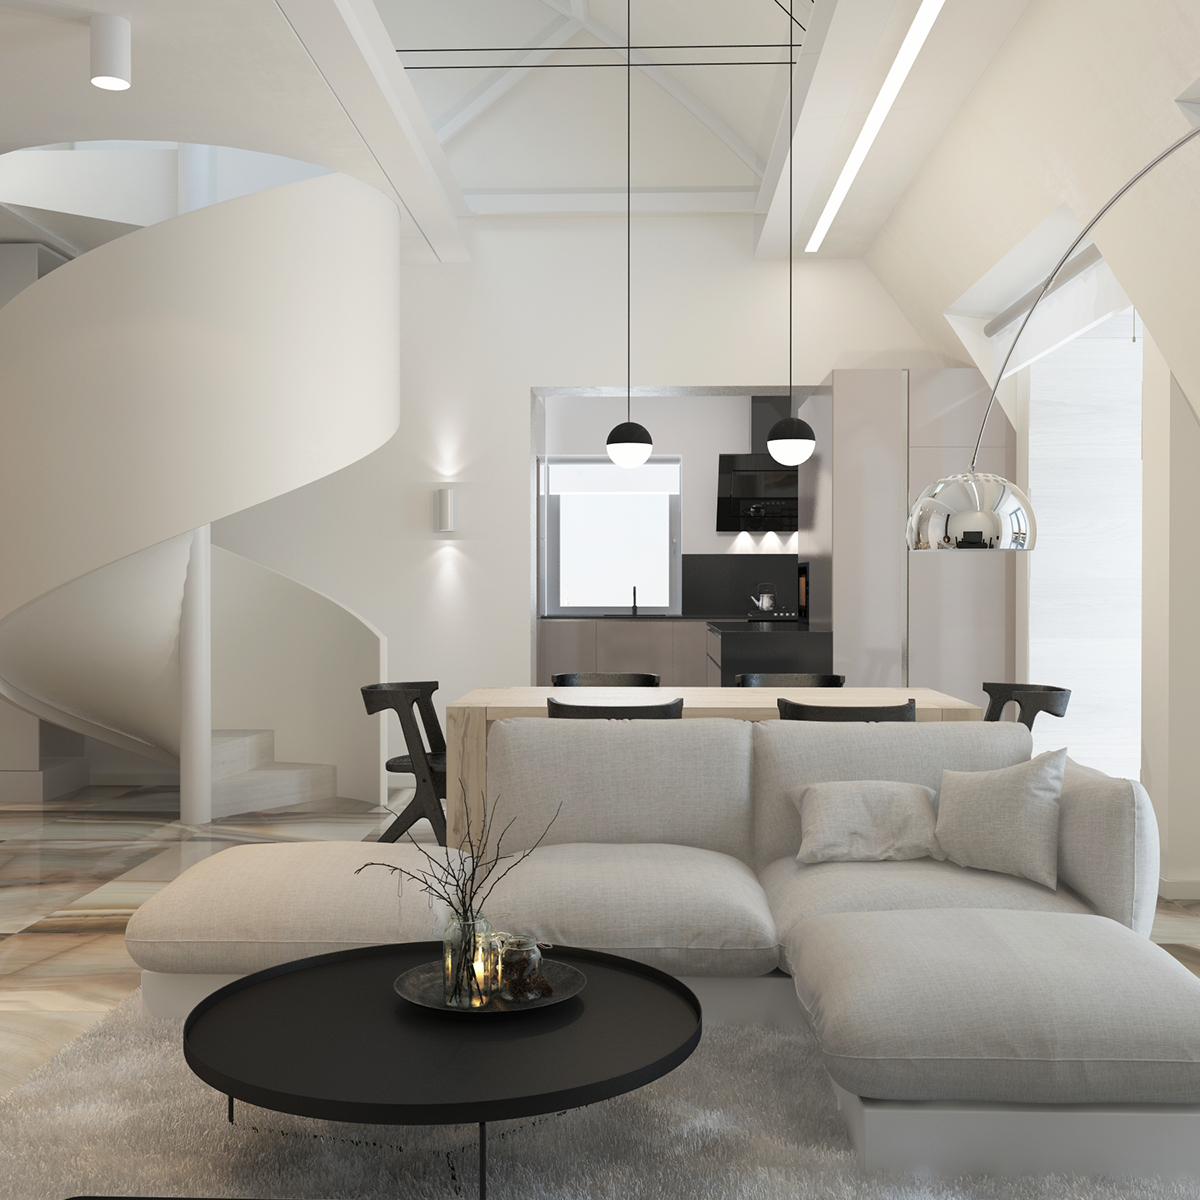 Penthouse Design Wohnung / stilprojekt Blog Christoph Baum